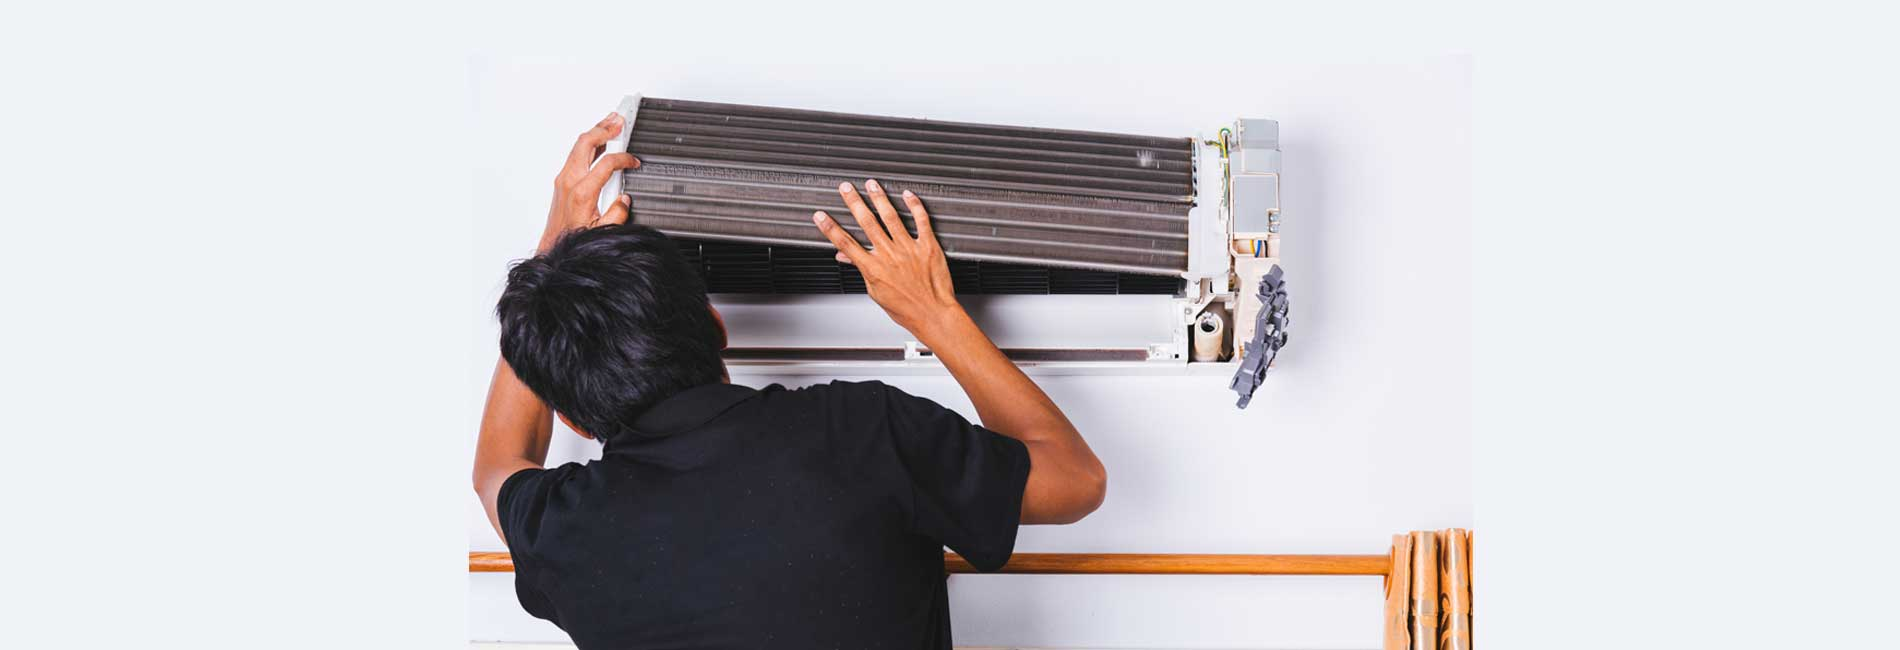 LG AC Uninstallation and Installation in Manapakkam